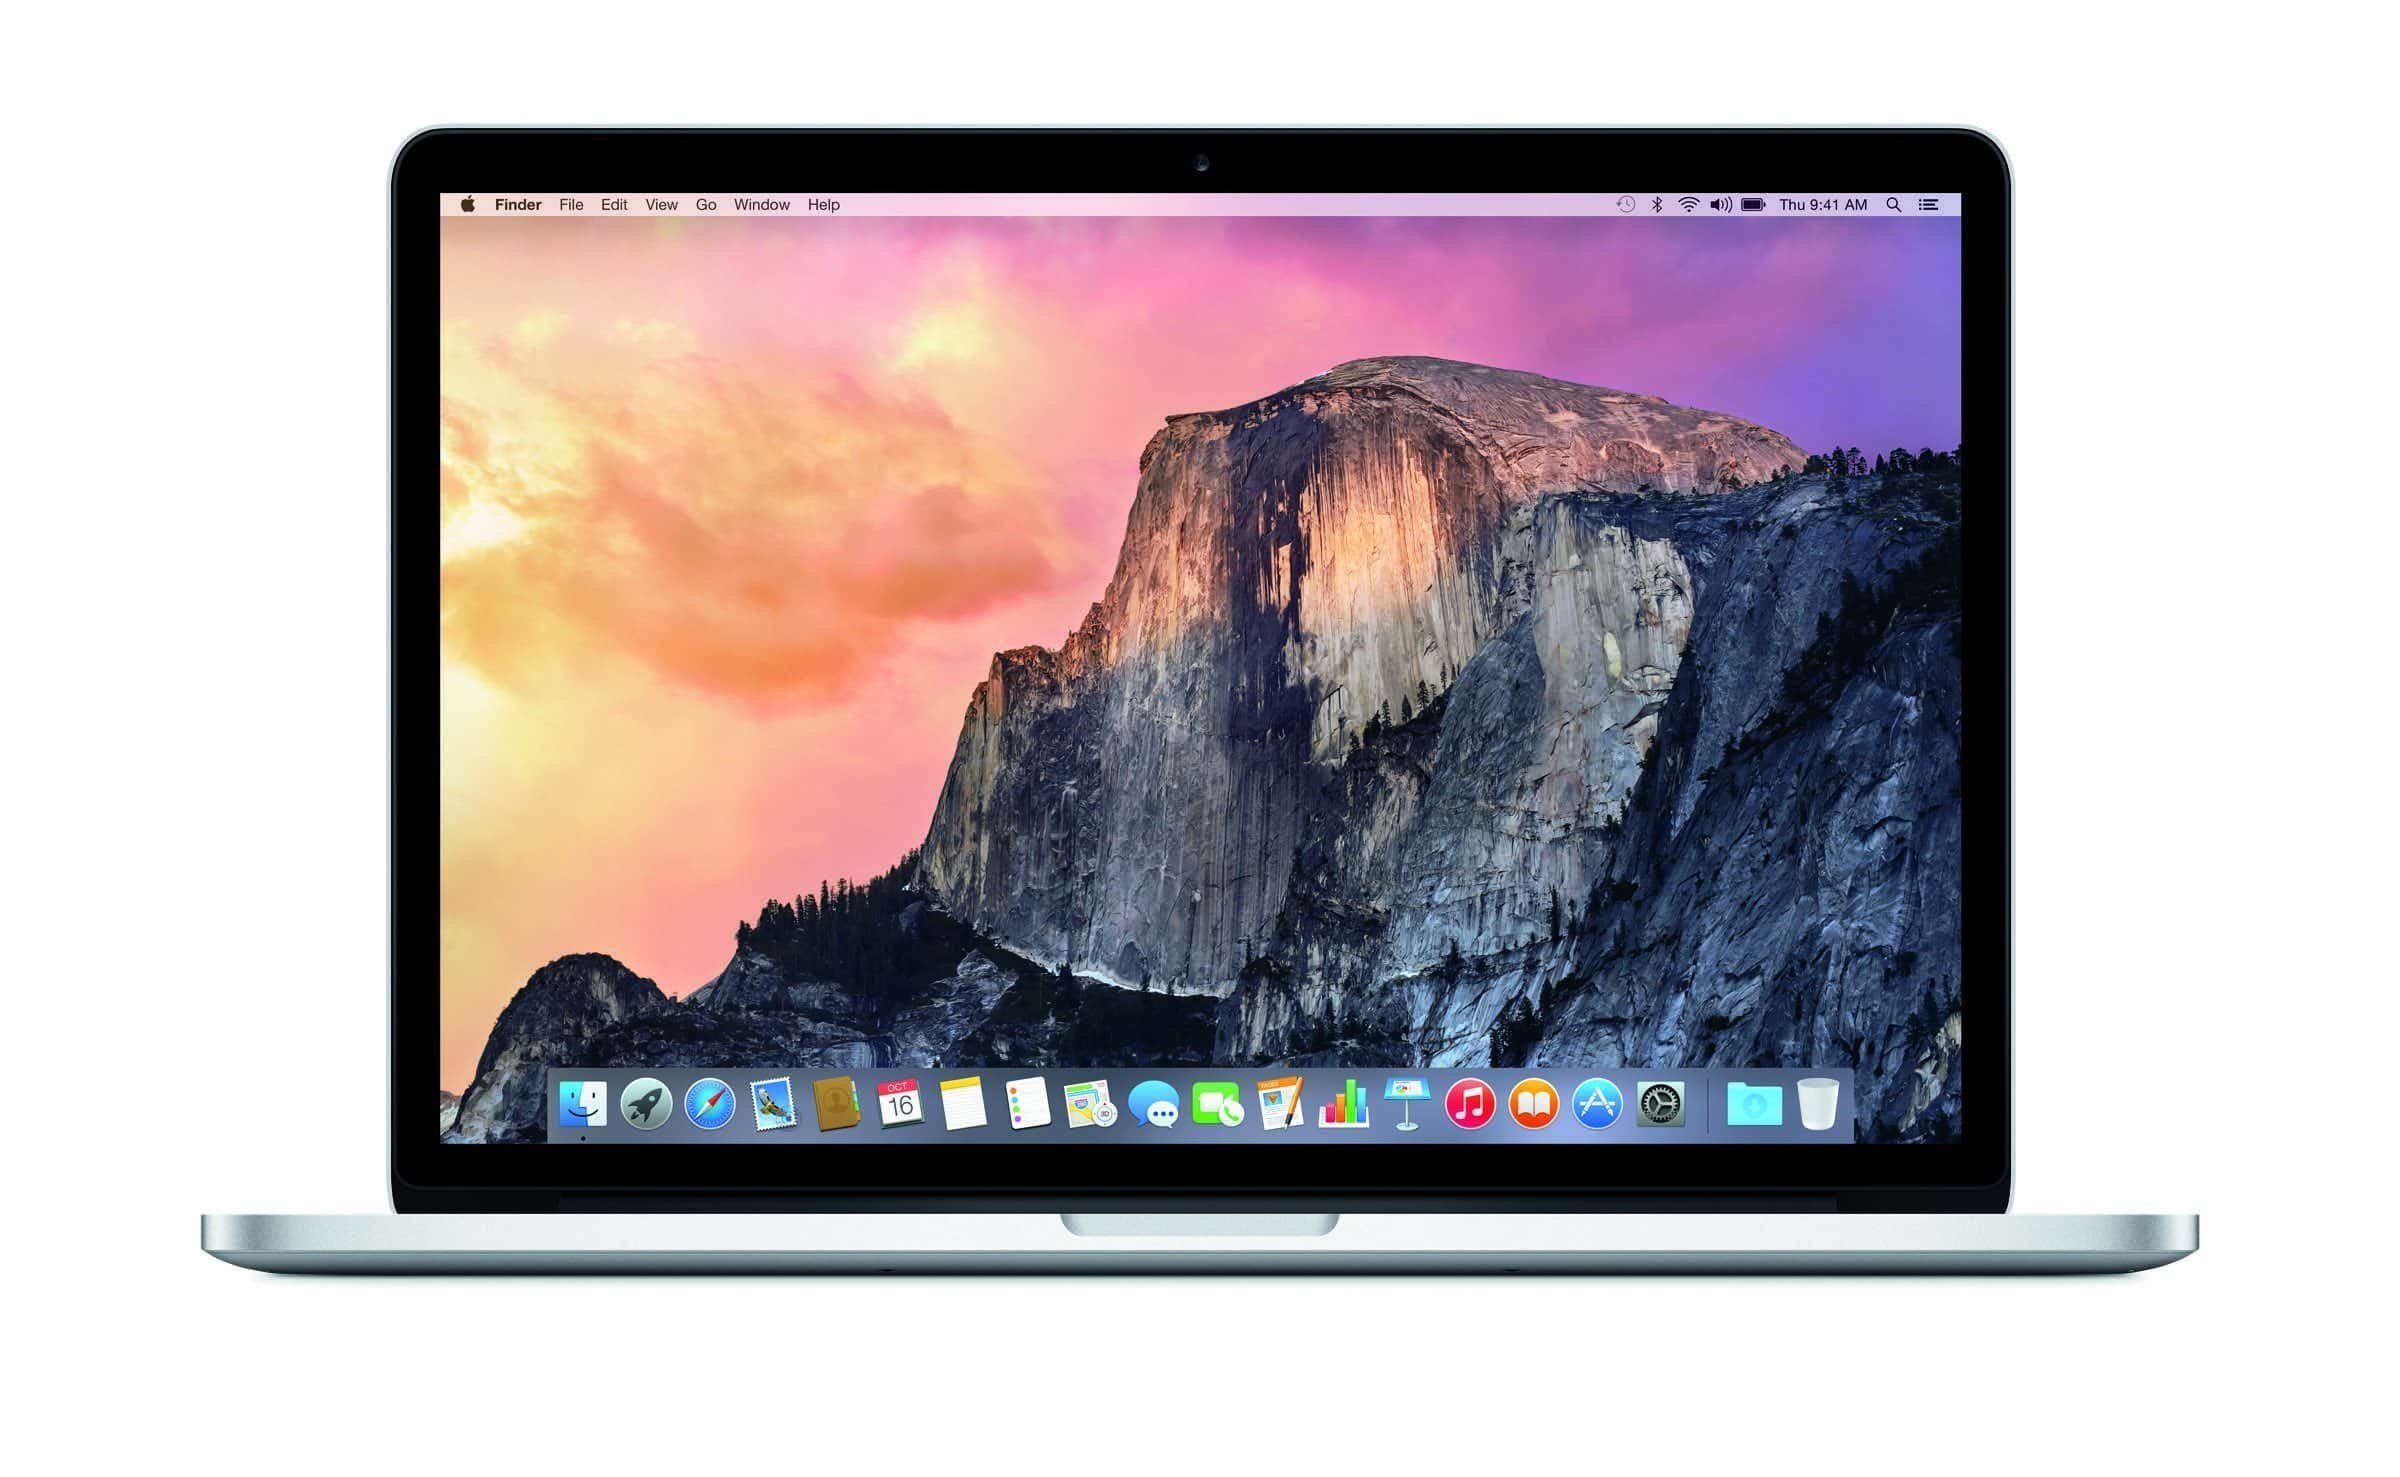 MacBook Pro 15 mit OS X Yosemite